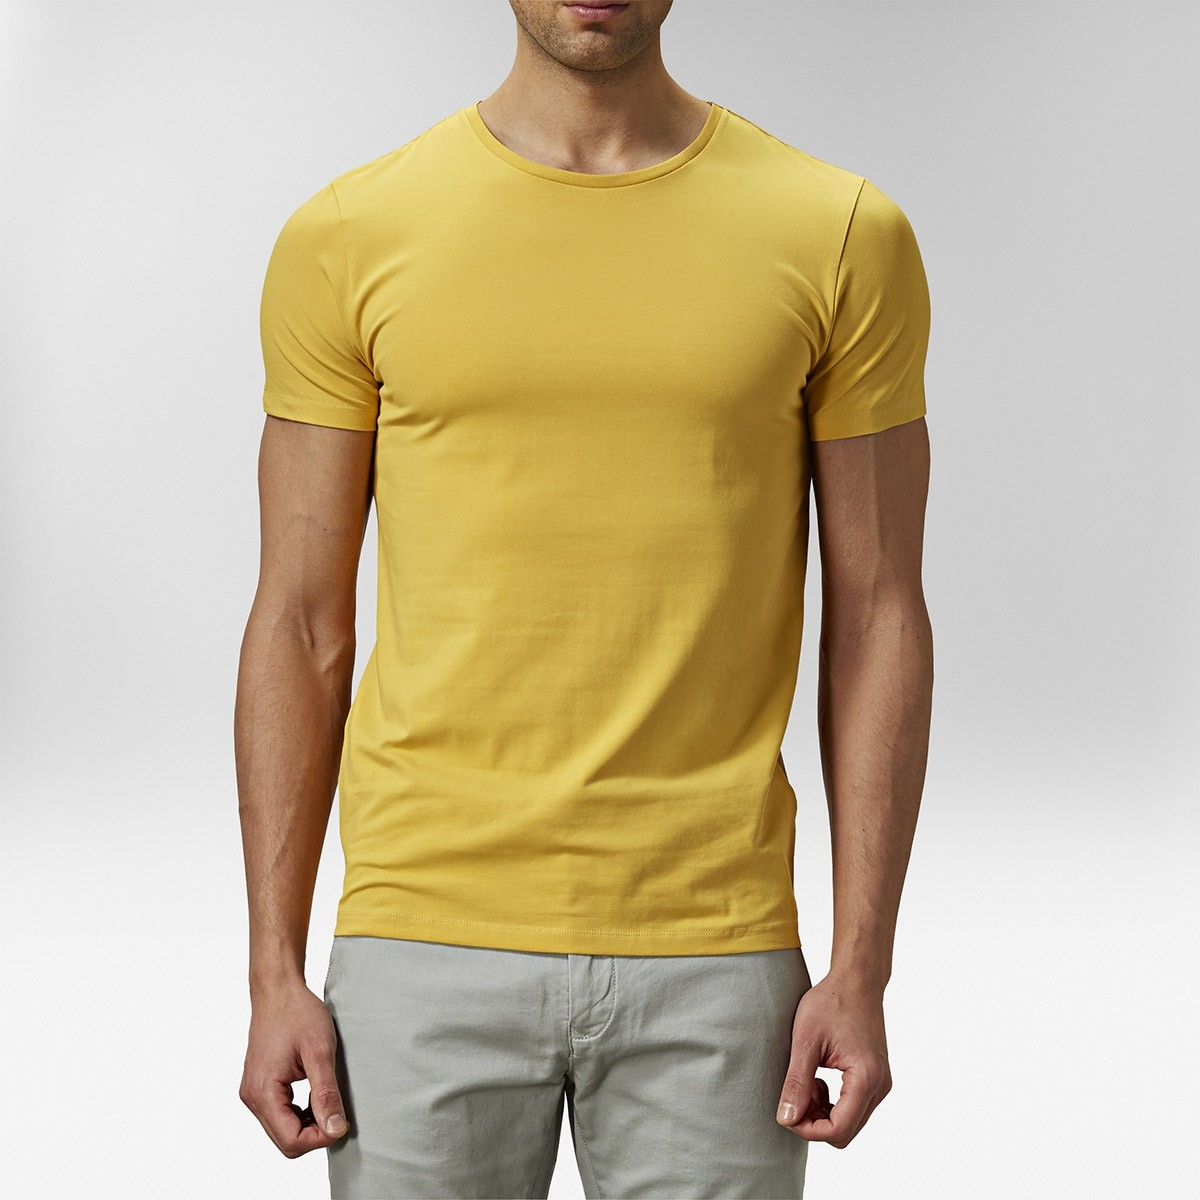 Holborn T-shirt Gul 2 | Riley | Brothers.se